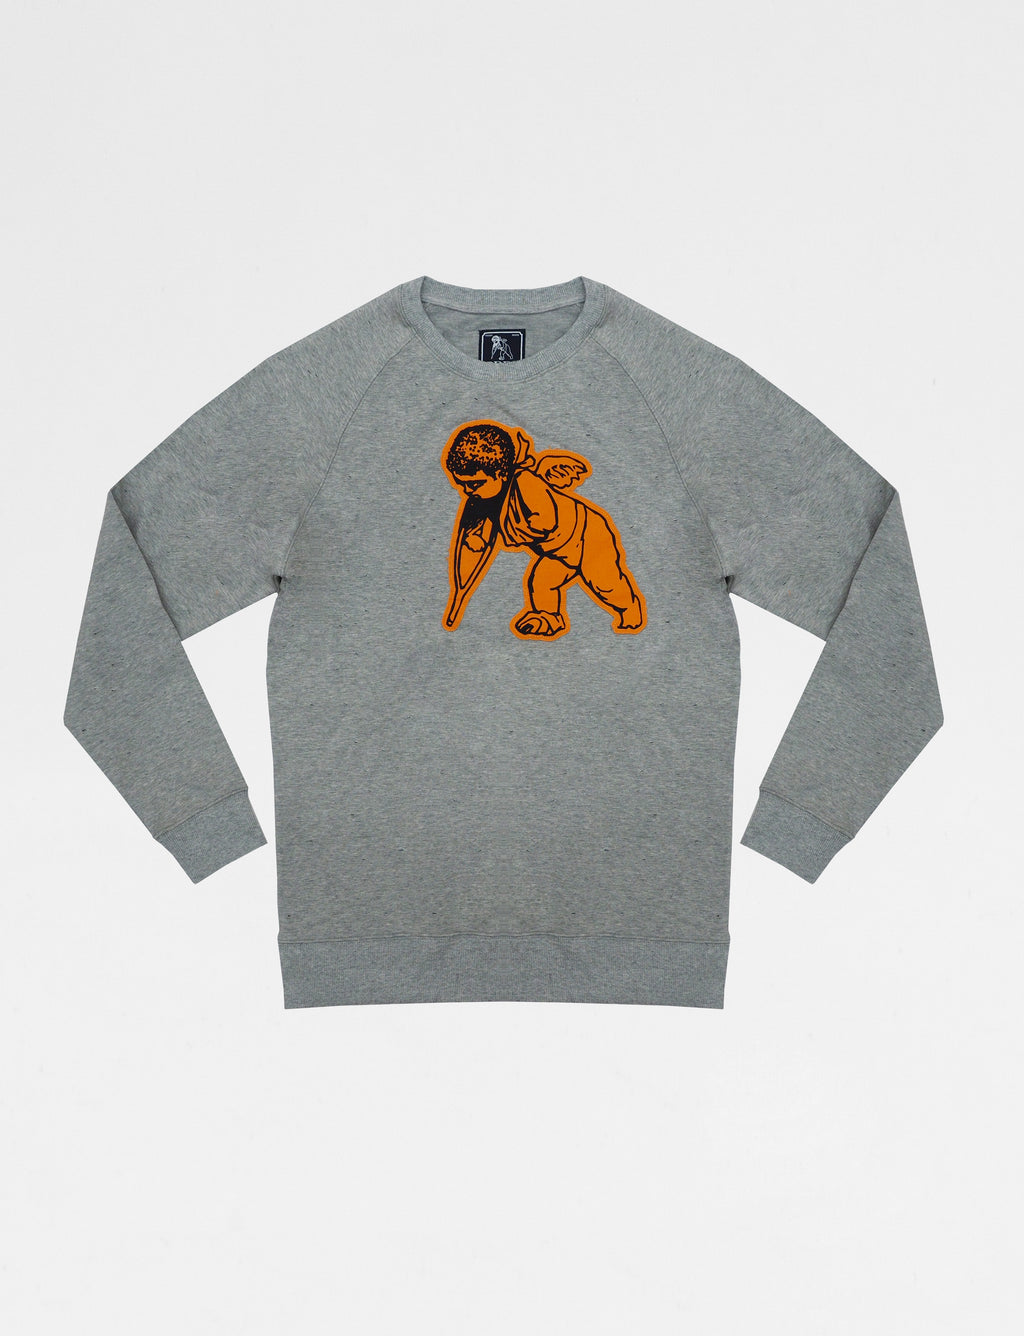 Prps - Cherub Applique Crewneck - Hoodies & Sweaters - Prps